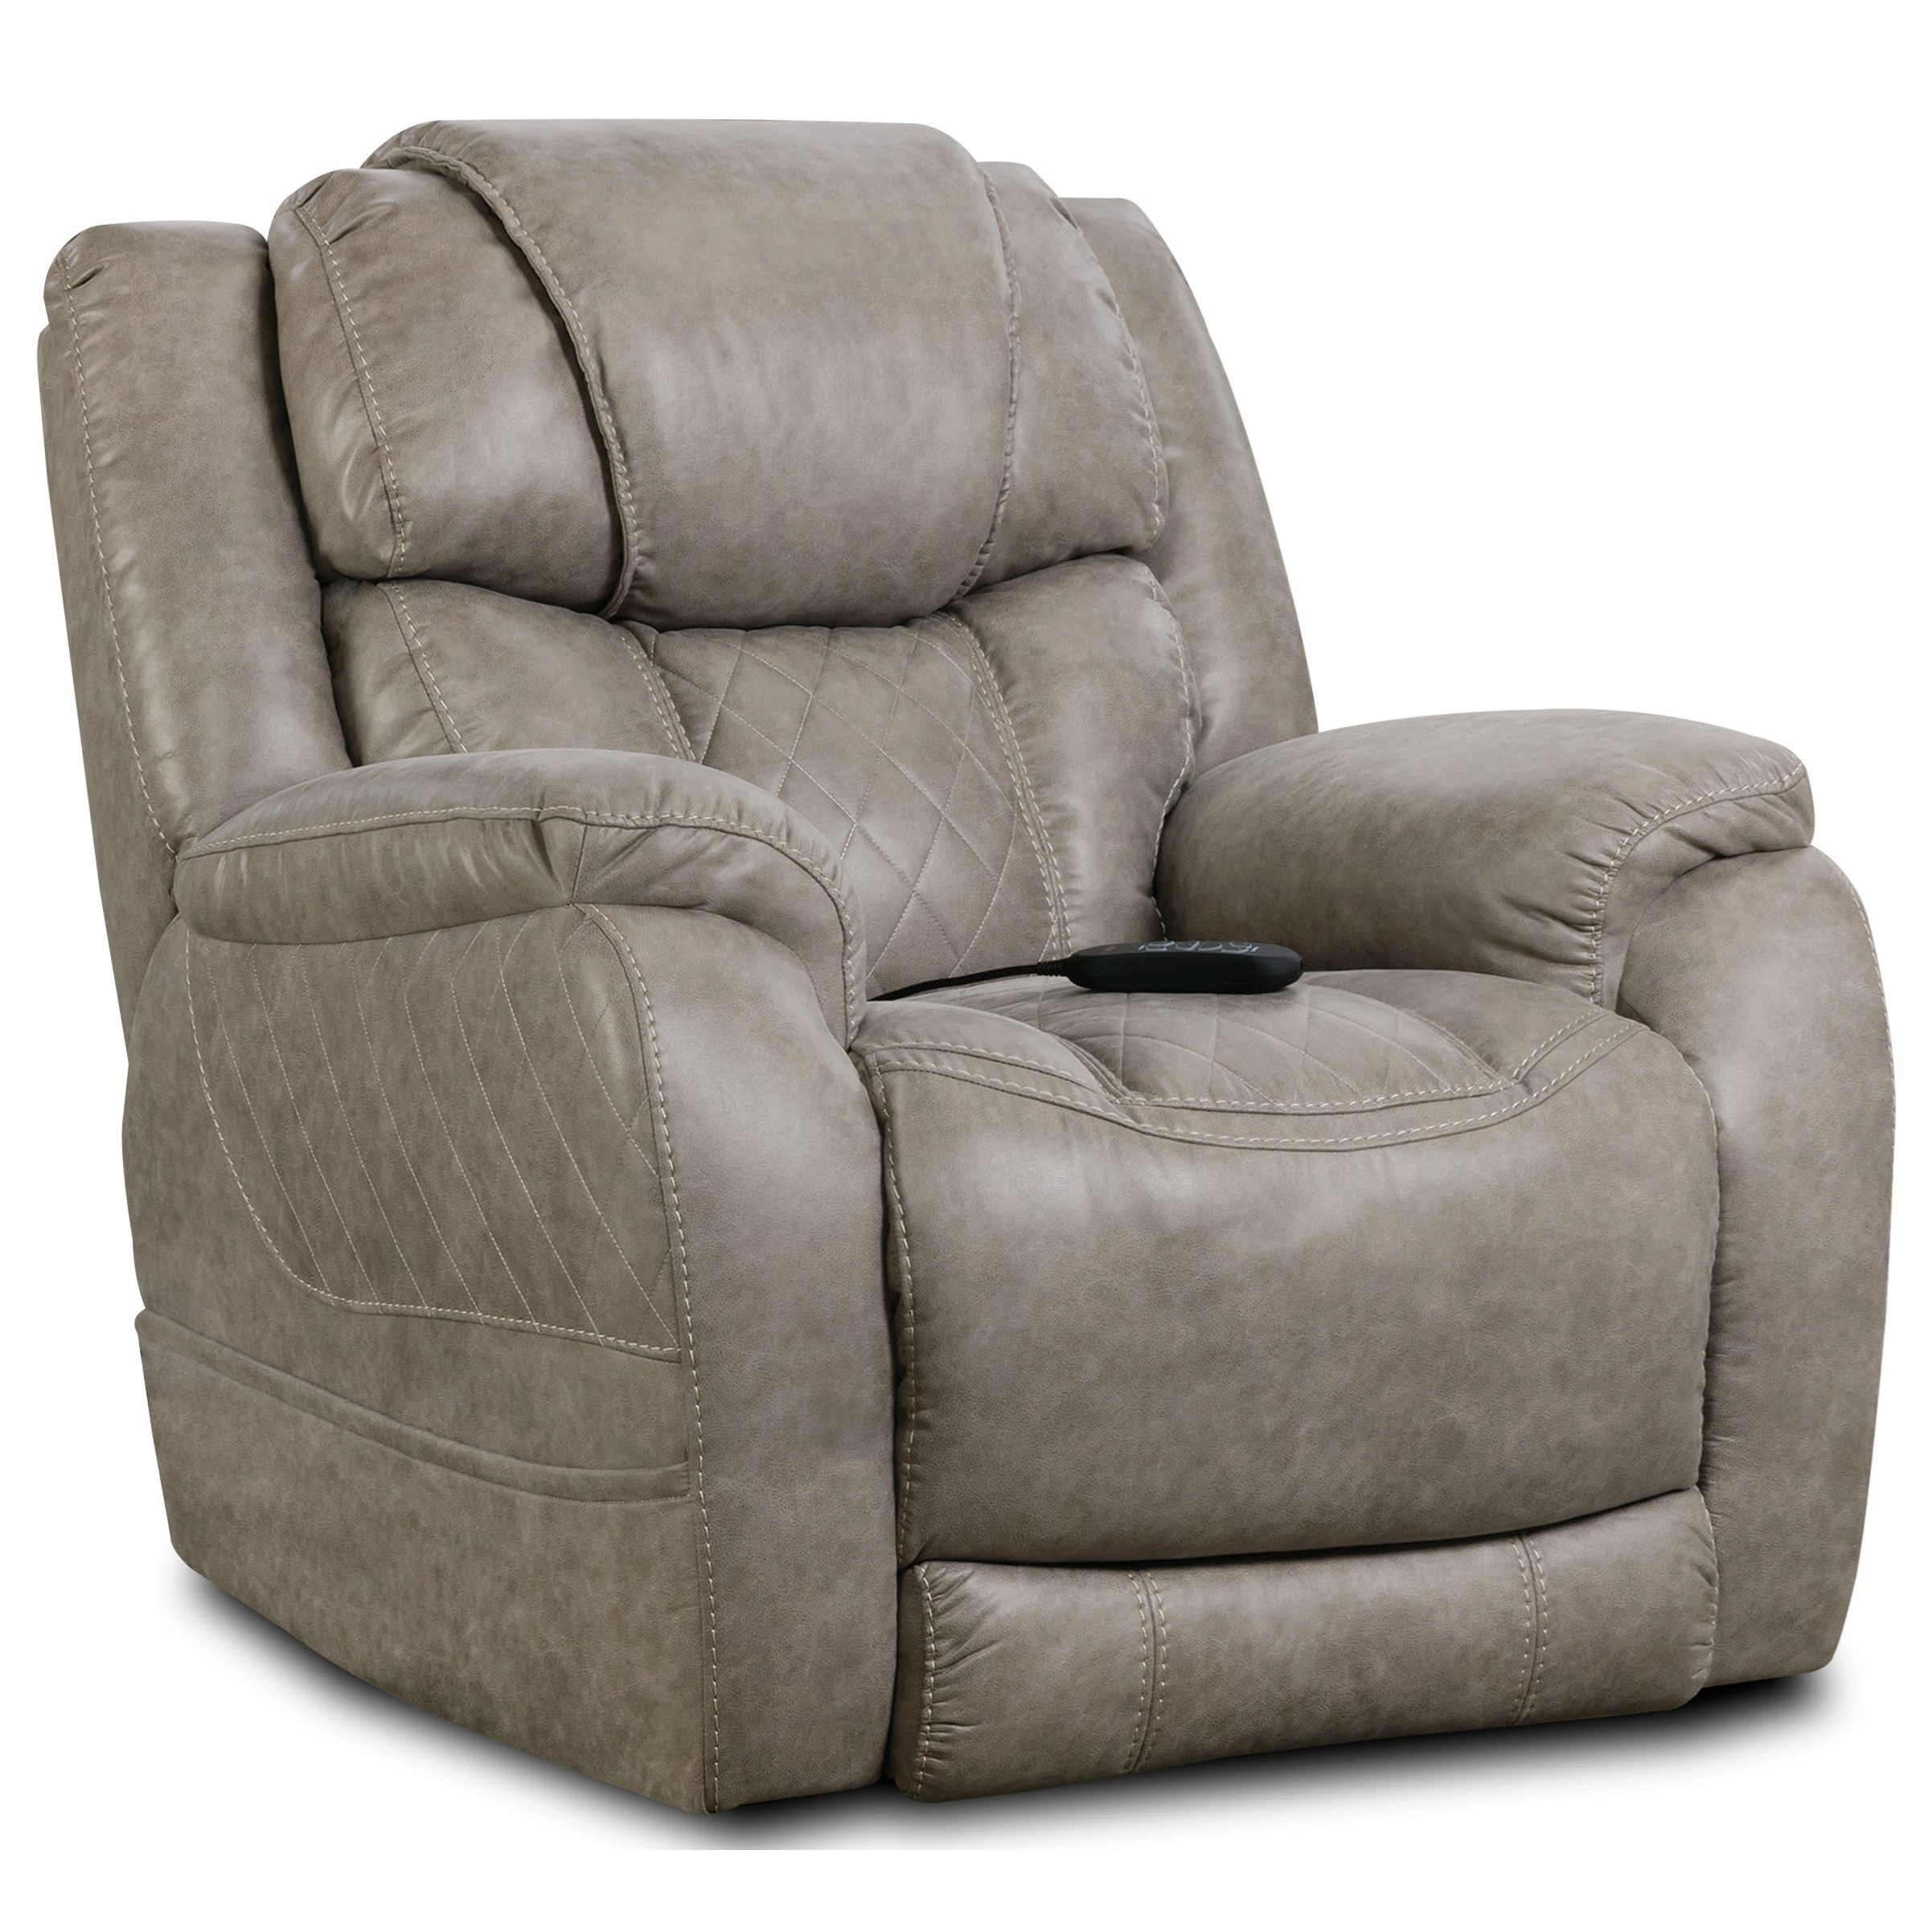 174 Power Wall Saver Recliner by HomeStretch at Bullard Furniture